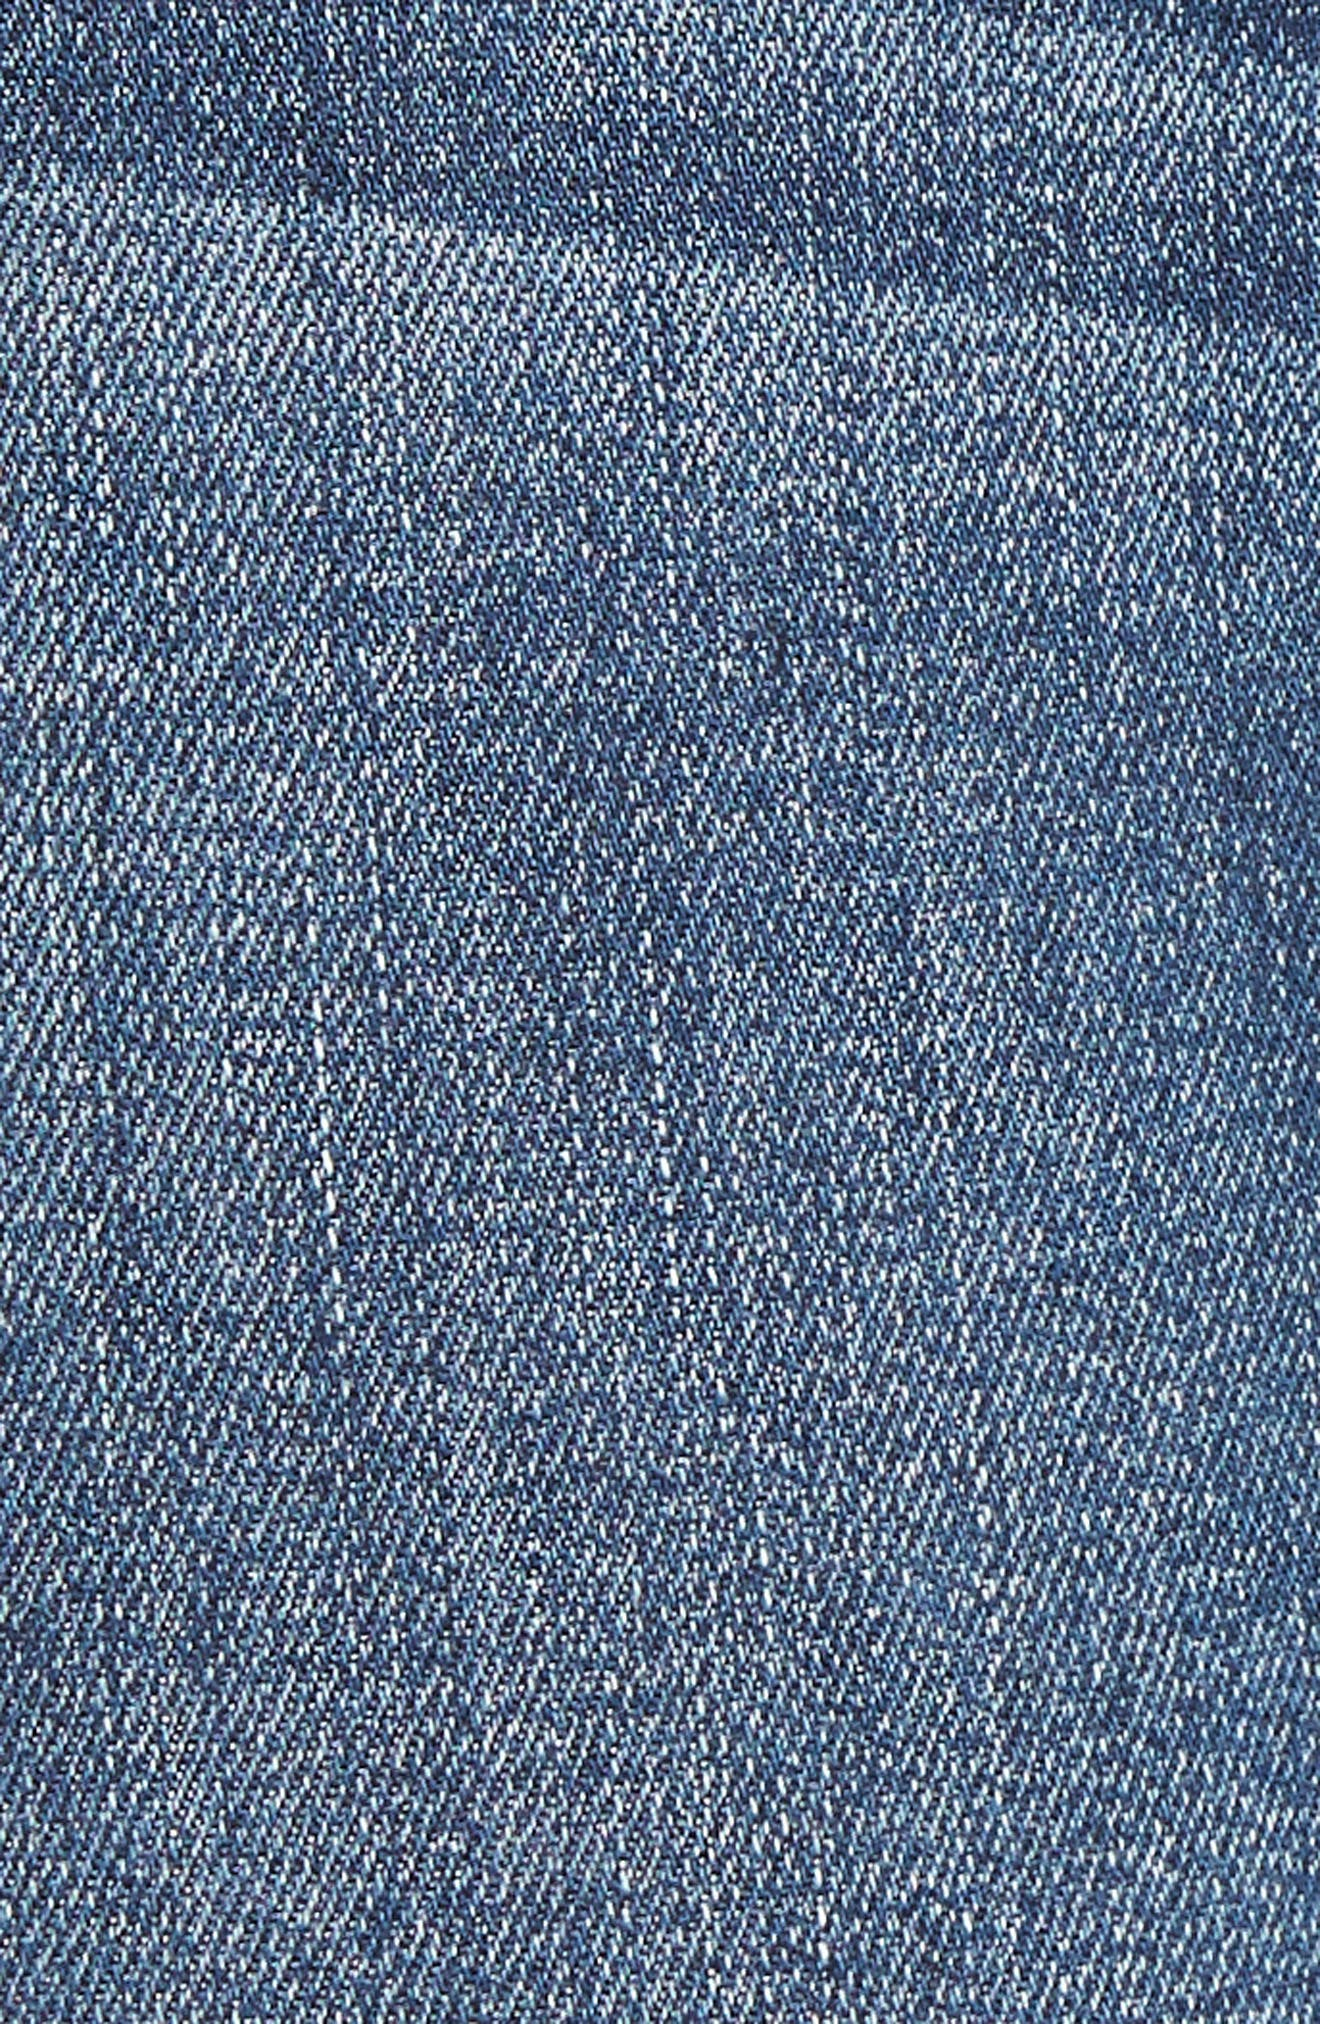 Ab-solution Ankle Skinny Jeans,                             Alternate thumbnail 6, color,                             BLUE